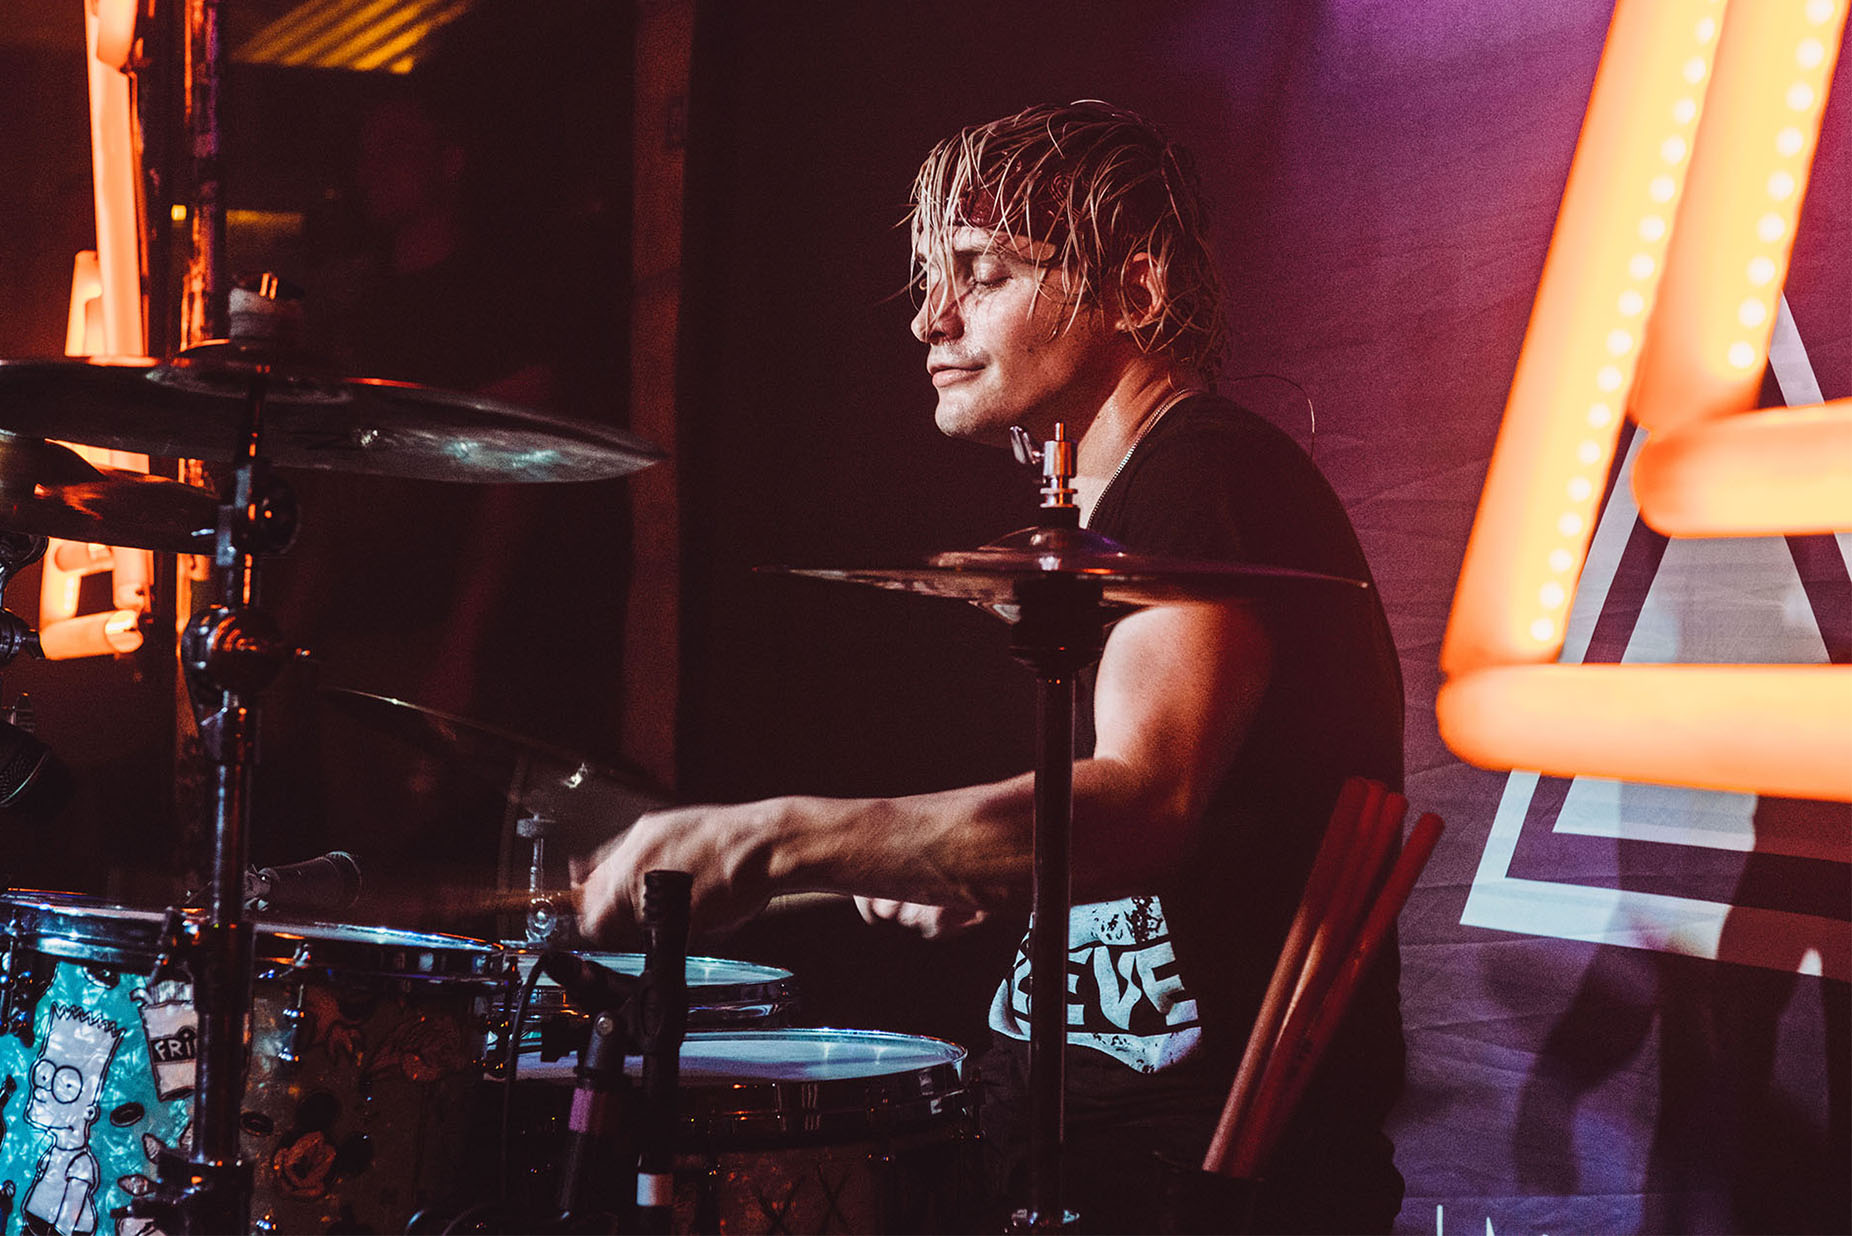 maxx danziger set it off drummer band concert rock photo photography image